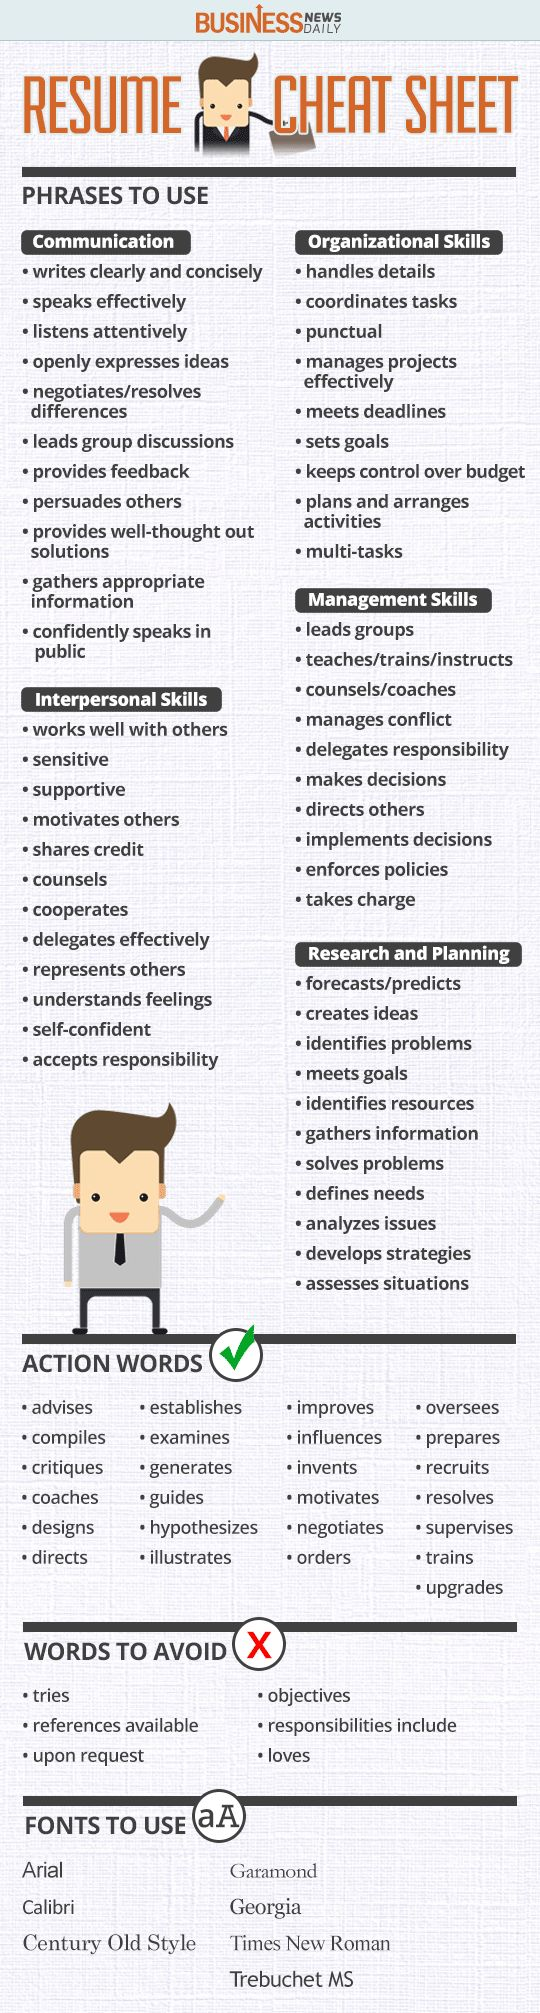 Opposenewapstandardsus  Splendid  Ideas About Resume On Pinterest  Cv Format Resume  With Exciting Resume Cheat Sheet Infographic Andrews Almost Done With A Complete Unit On Employment Which With Appealing Cover Letter Of Resume Also Assistant Store Manager Resume In Addition Effective Resumes And One Page Resume Examples As Well As Examples Of Bad Resumes Additionally Make A Free Resume Online From Pinterestcom With Opposenewapstandardsus  Exciting  Ideas About Resume On Pinterest  Cv Format Resume  With Appealing Resume Cheat Sheet Infographic Andrews Almost Done With A Complete Unit On Employment Which And Splendid Cover Letter Of Resume Also Assistant Store Manager Resume In Addition Effective Resumes From Pinterestcom